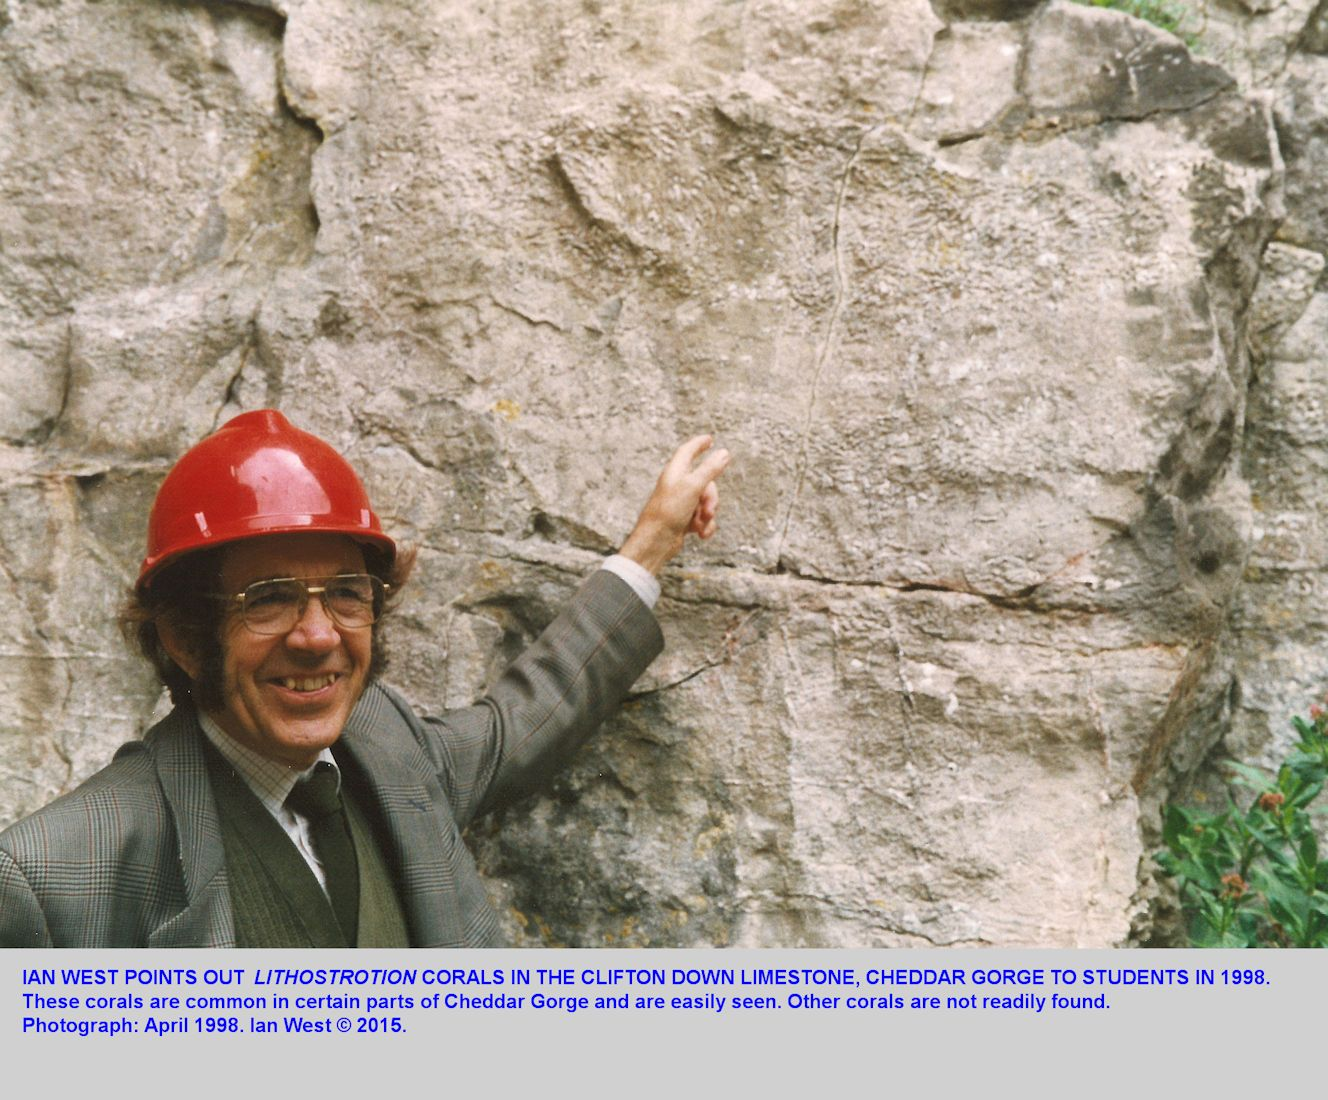 Ian West points out the coral Lithostrotion in the Clifton Down Limestone, lower part of Cheddar Gorge, Mendip Hills, Somerset, in April 1998